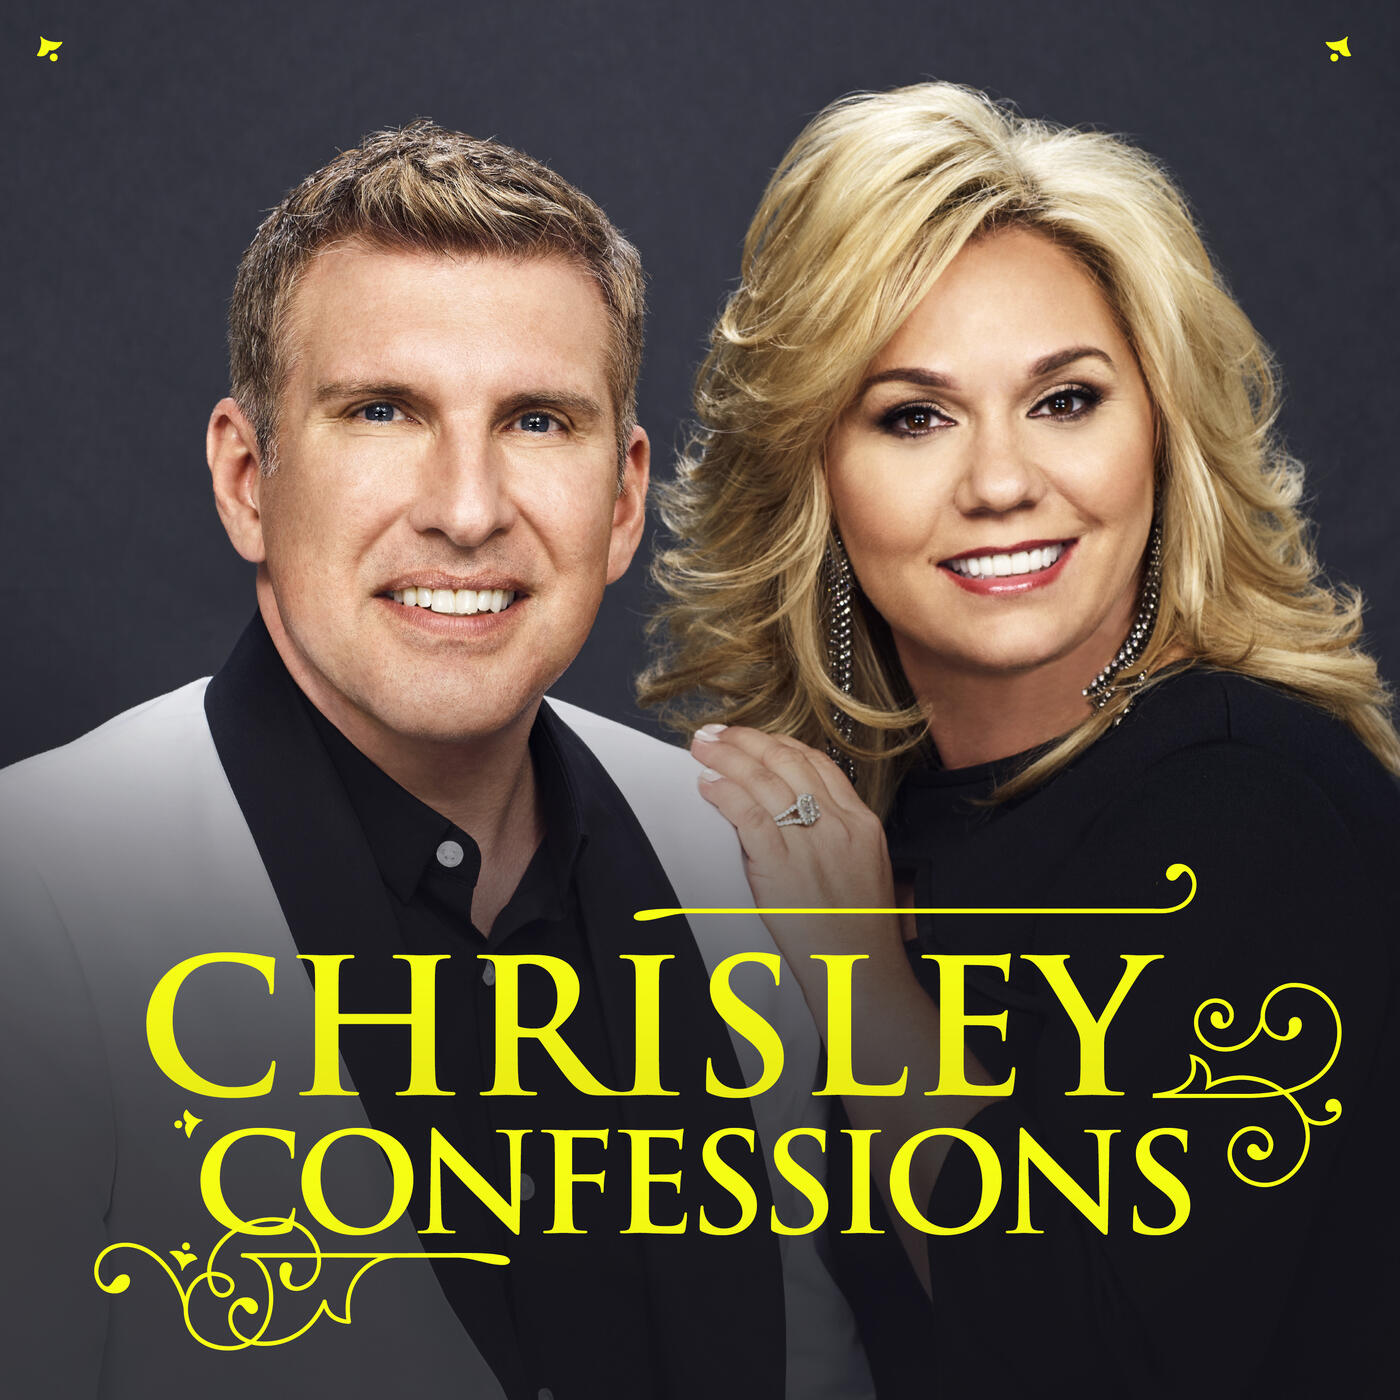 Jay DeMarcus of Rascal Flatts Joins the Chrisleys to Answer This Week's Voicemails!